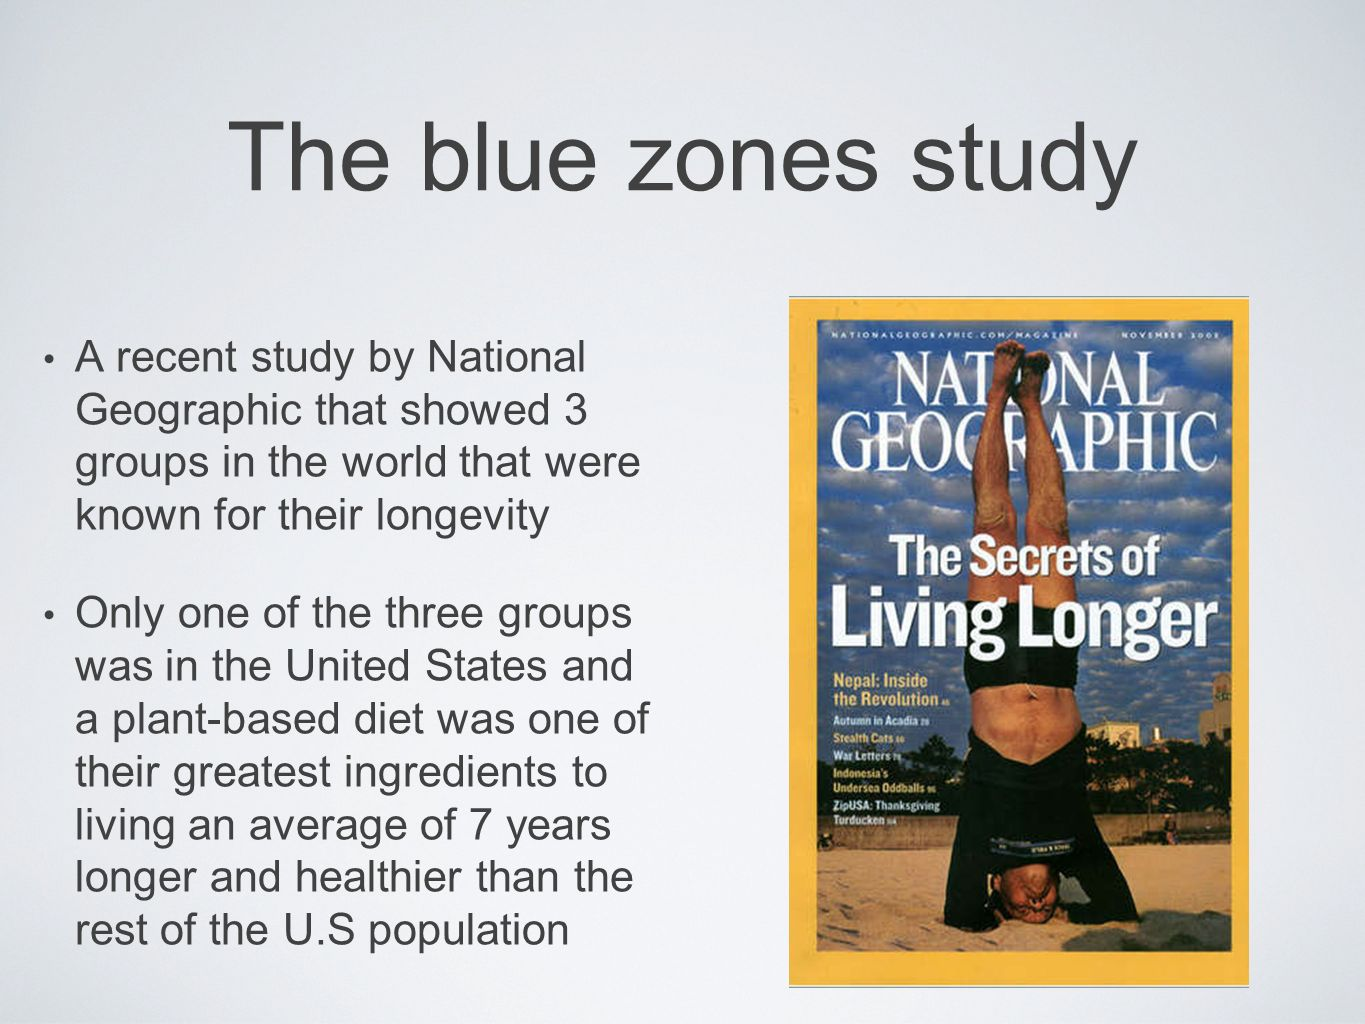 The blue zones study A recent study by National Geographic that showed 3 groups in the world that were known for their longevity.